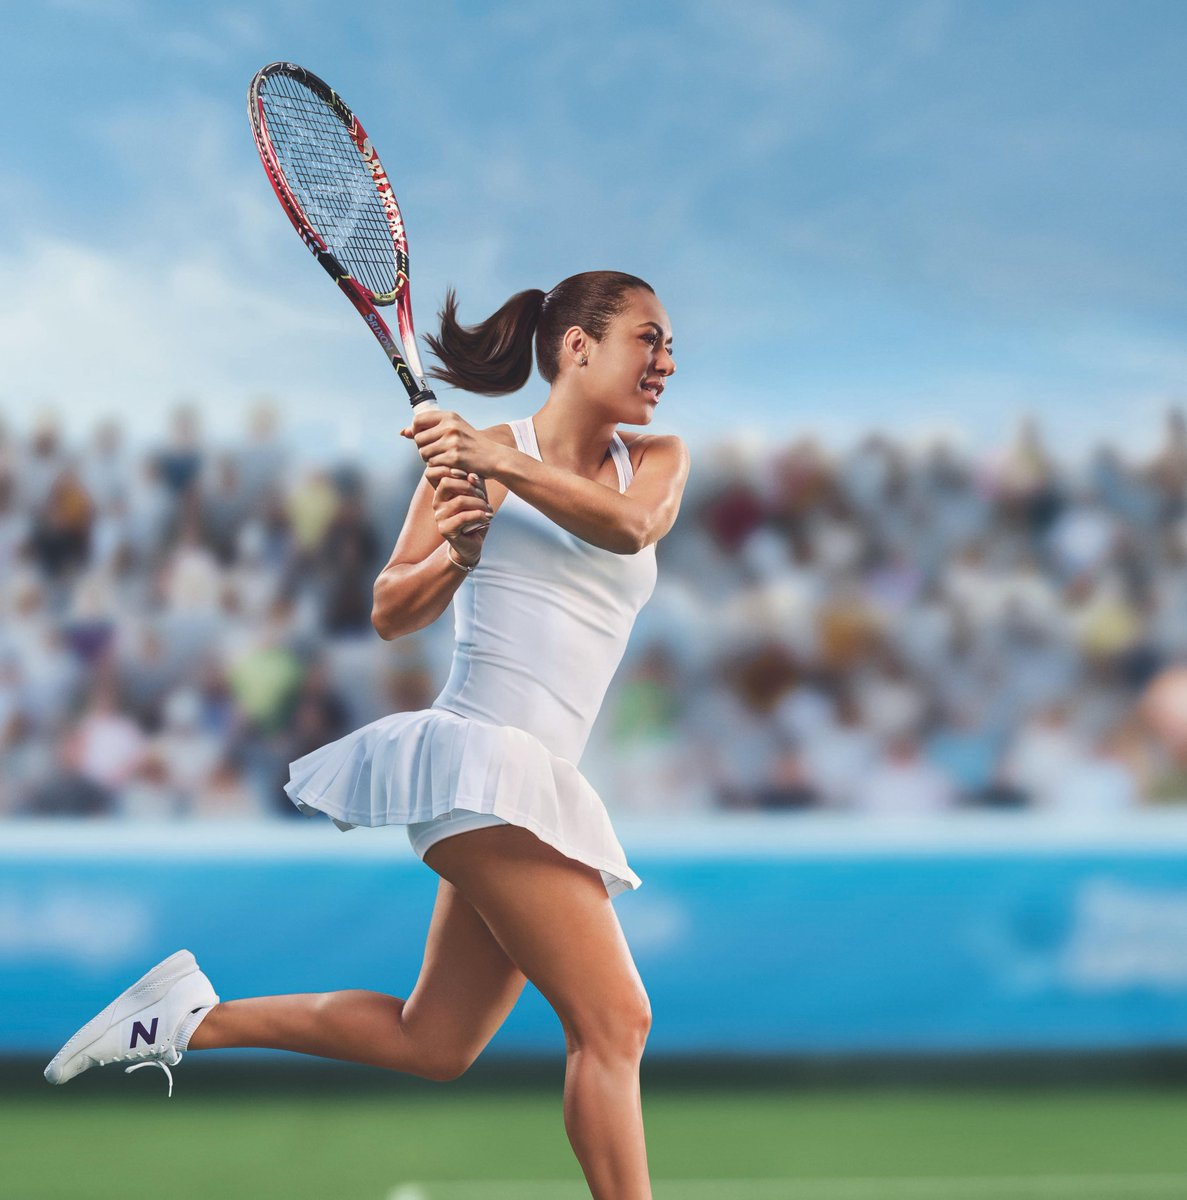 Is it possible to play sports during menstruation